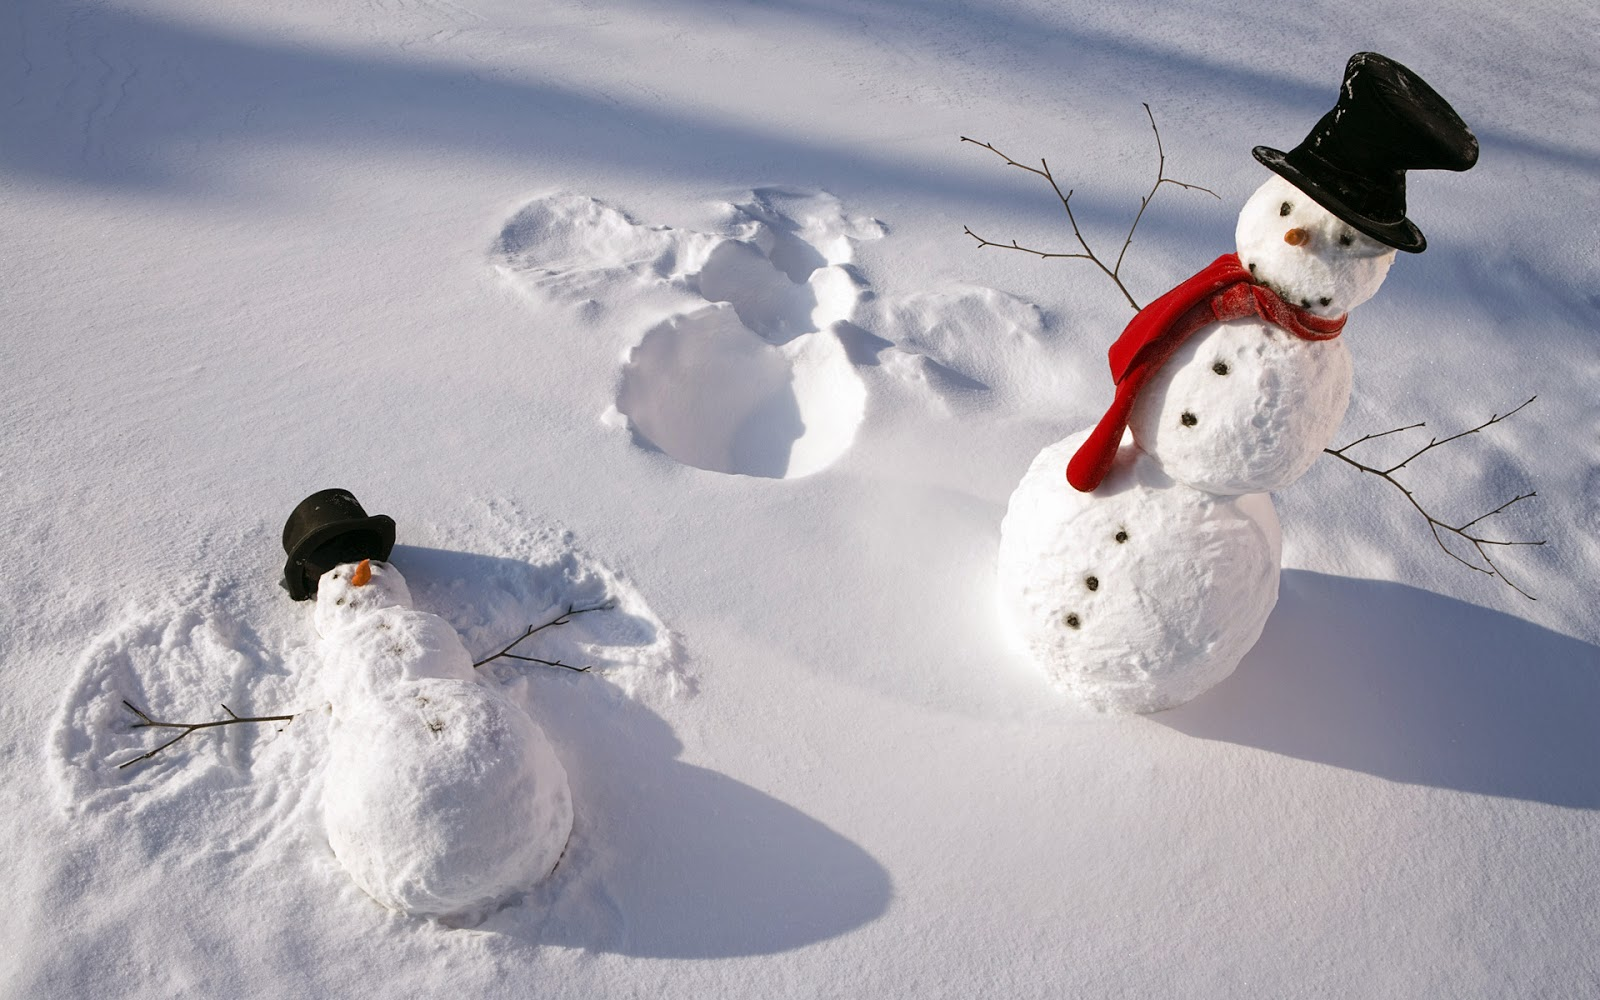 Frozen Snowman Ice Funny Image Picture HD